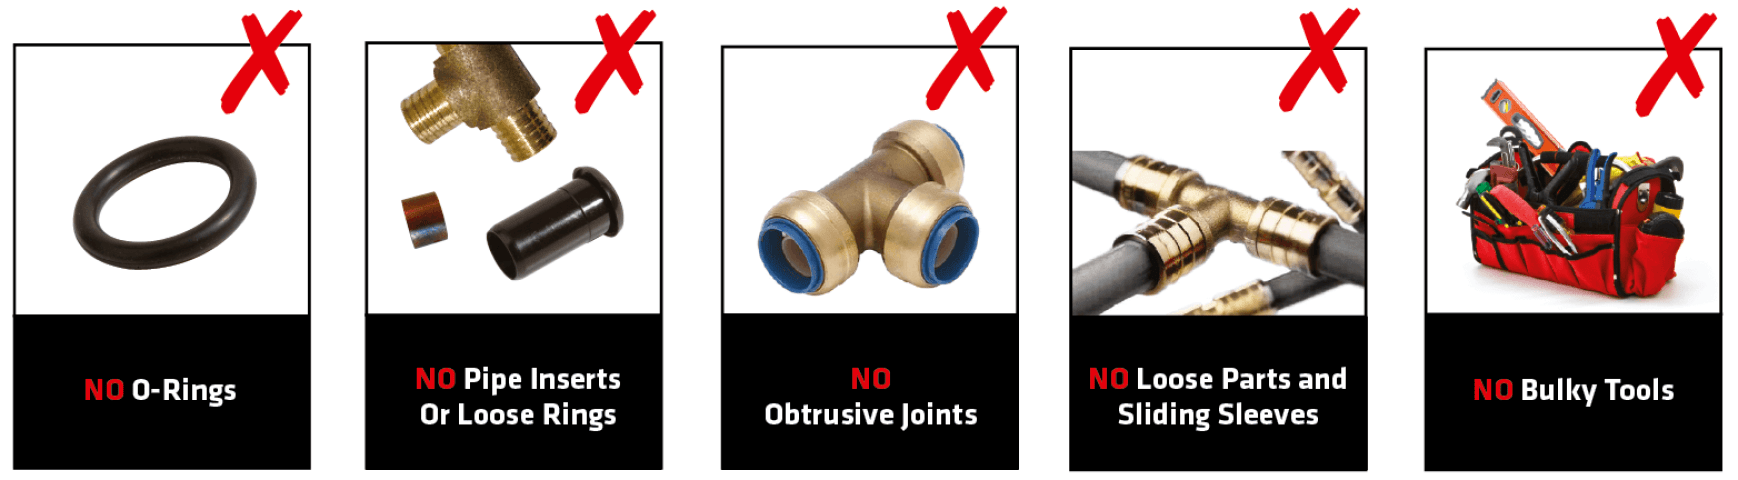 Why Buteline Fittings are Better